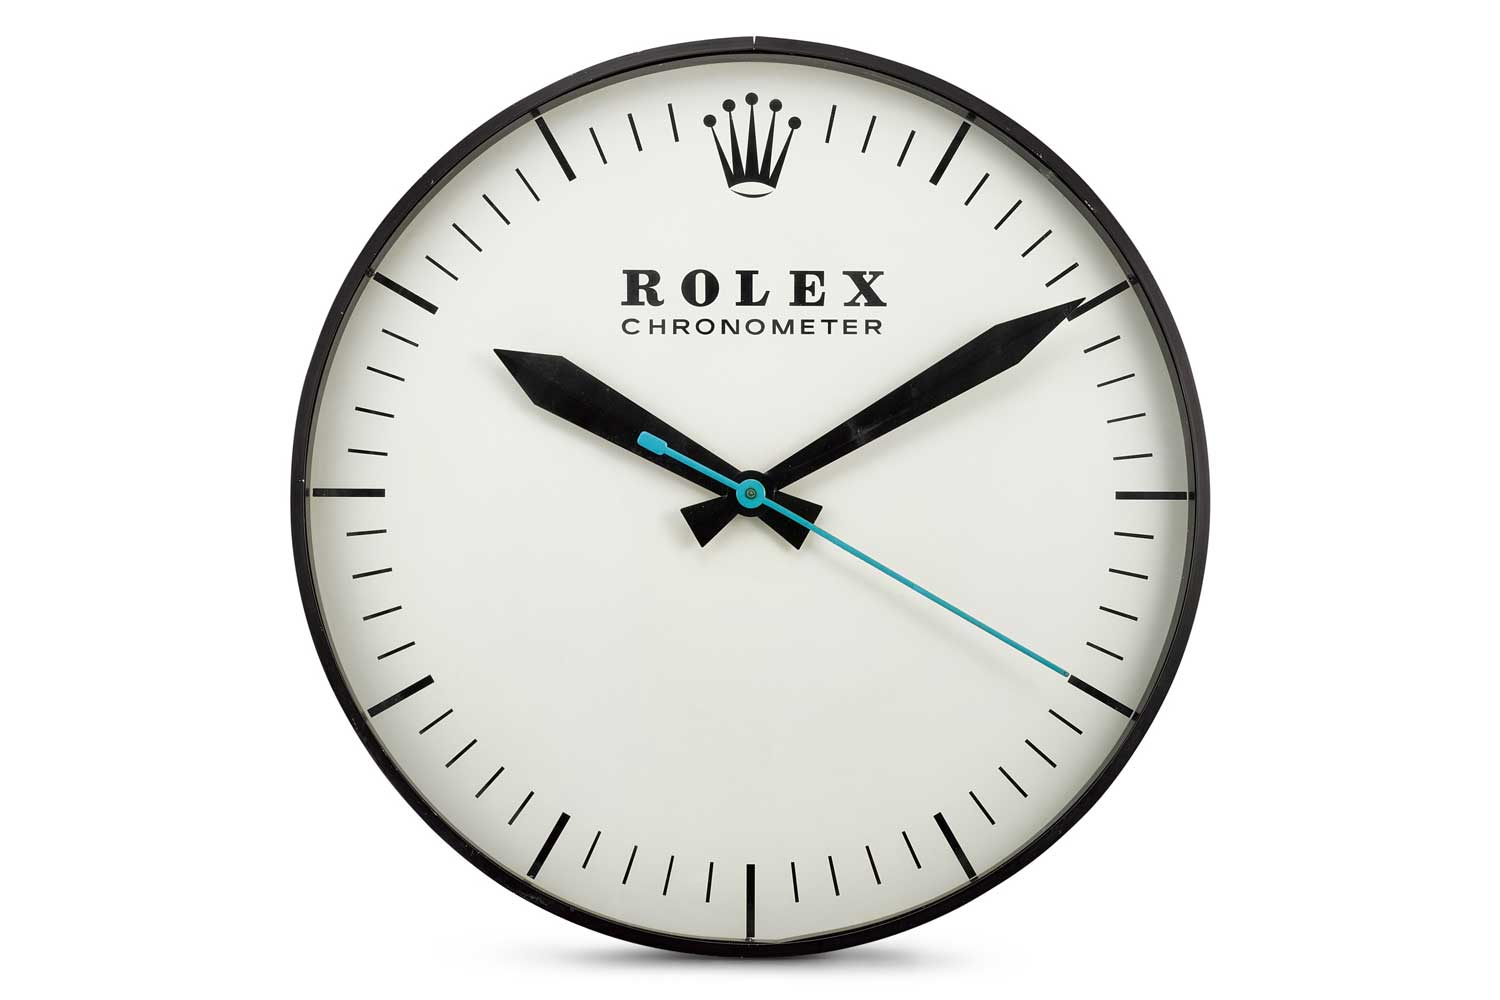 Lot 8128: The Ohio Advertising Display Co. for Rolex - Referrence G-062, a large blackened metal wall clock, circa 1965